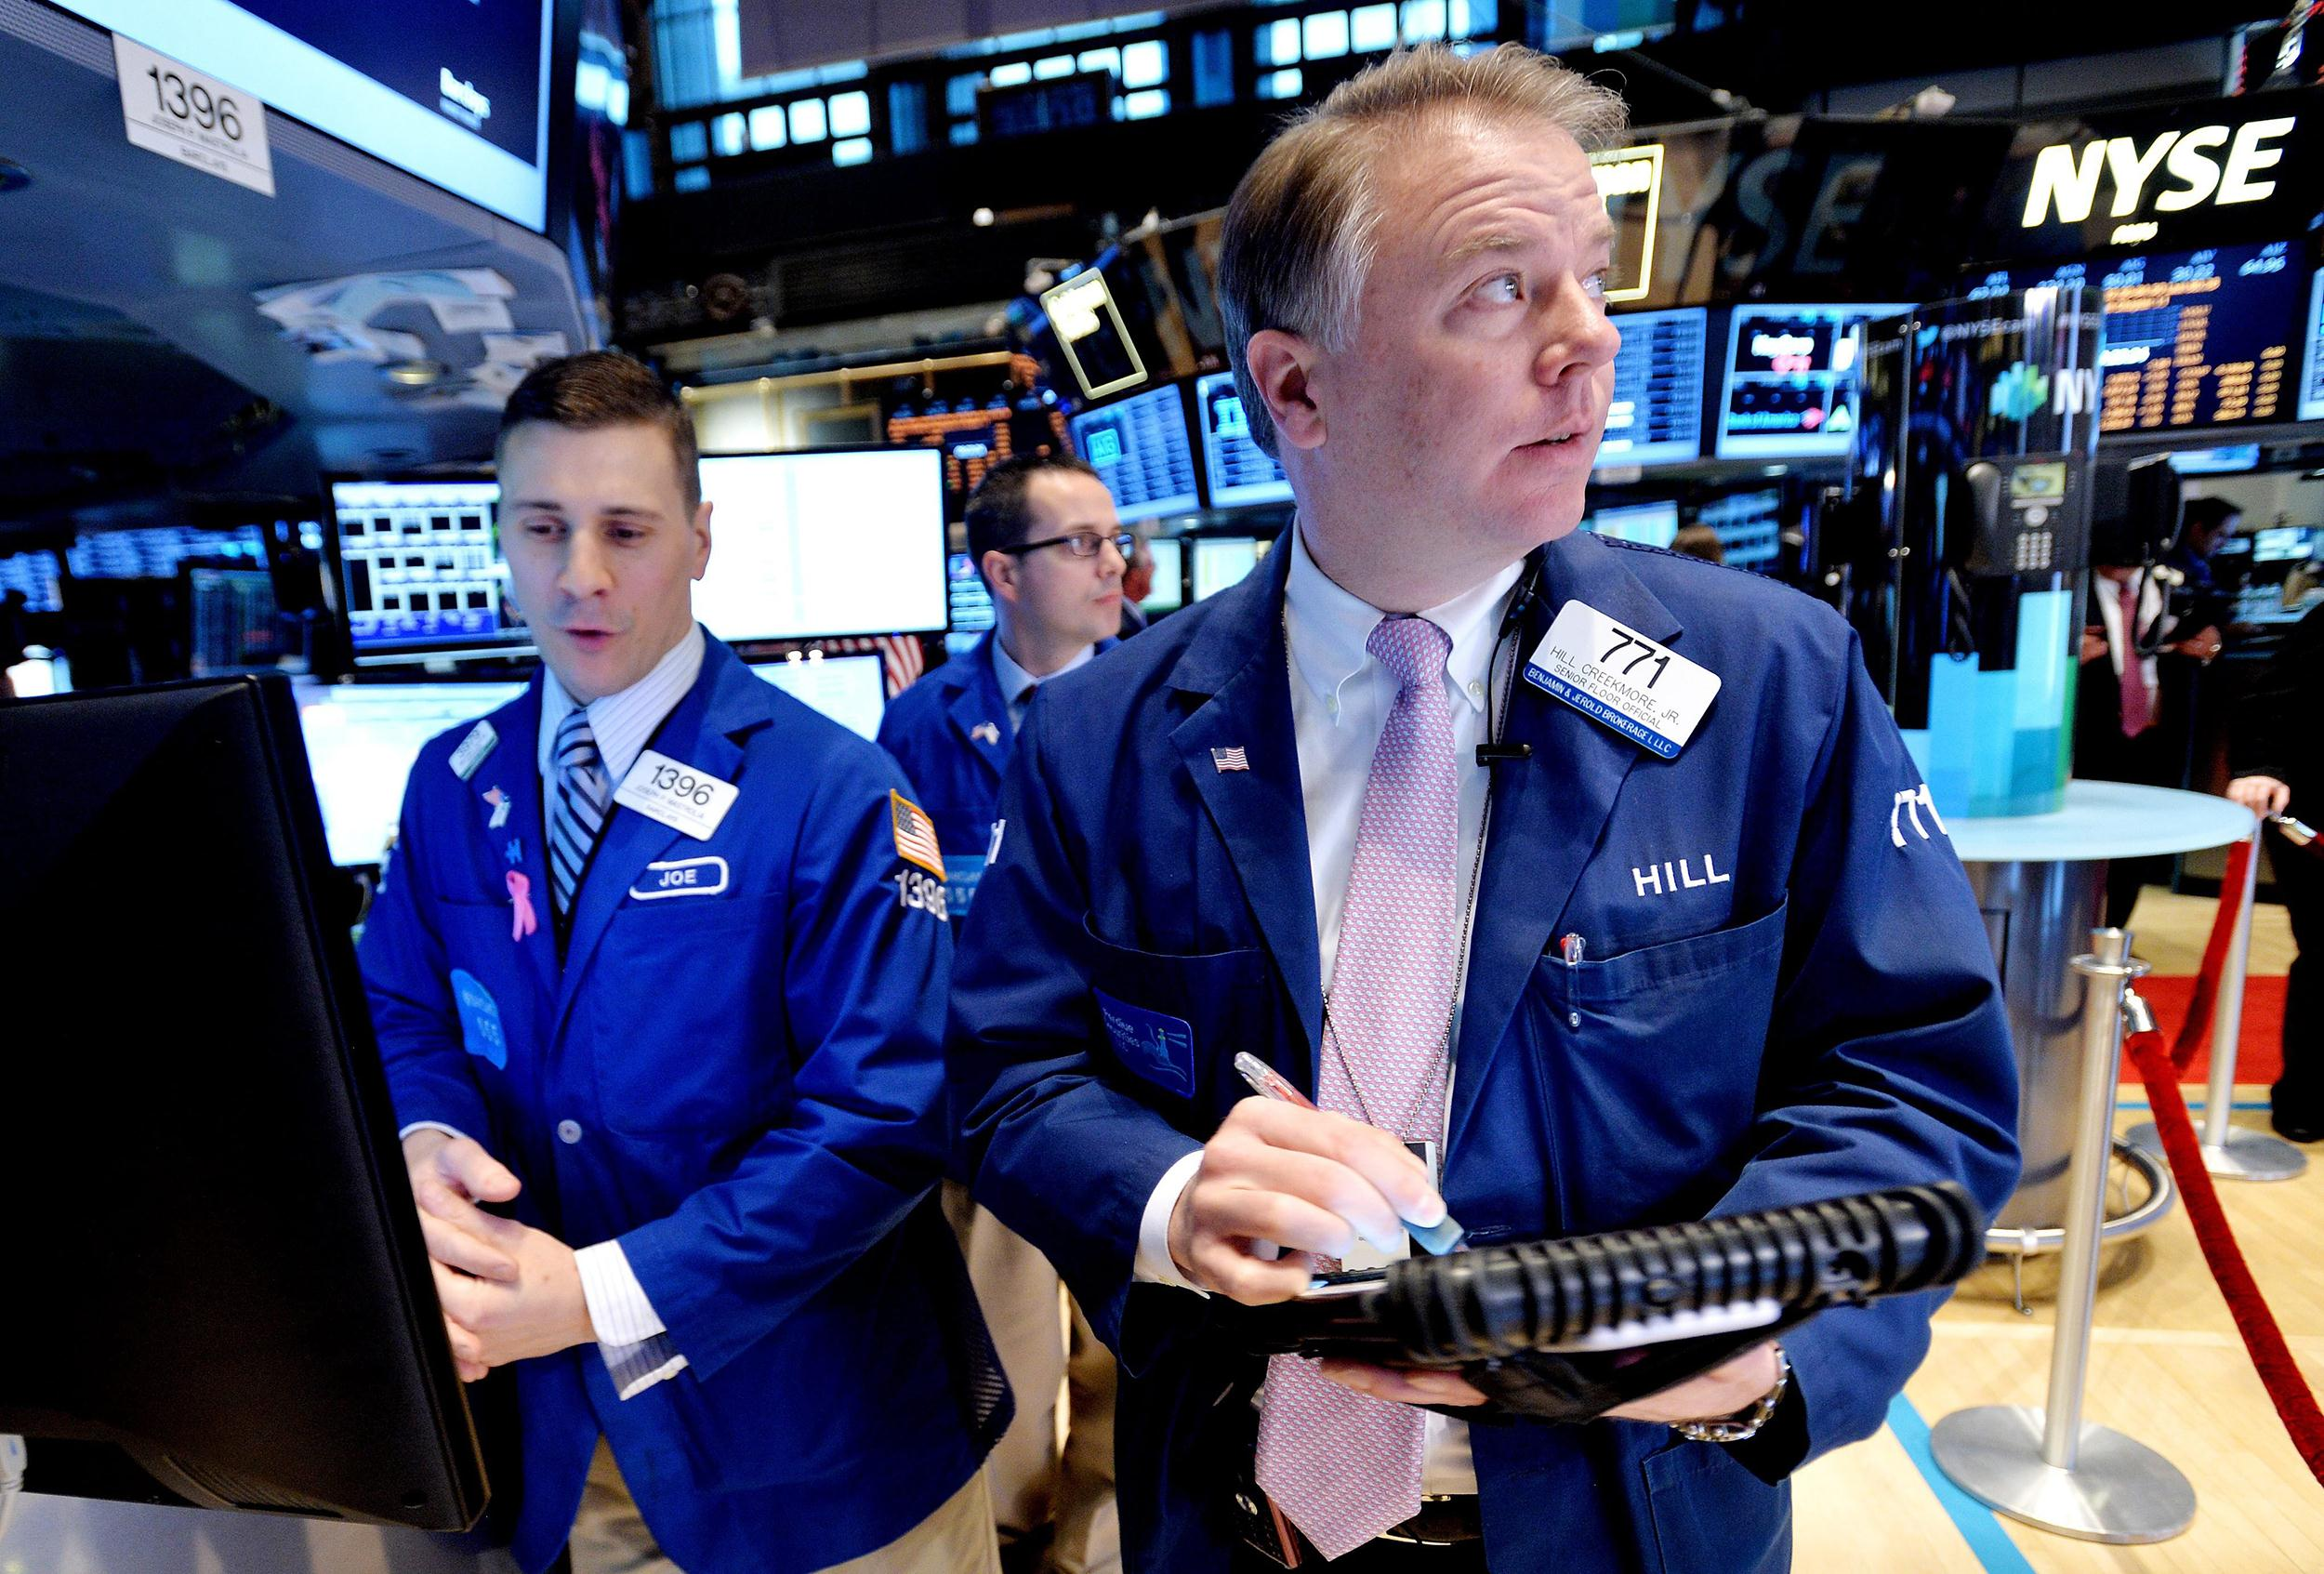 Watch The Fight That Halted Trading On Wall Street Nbc News